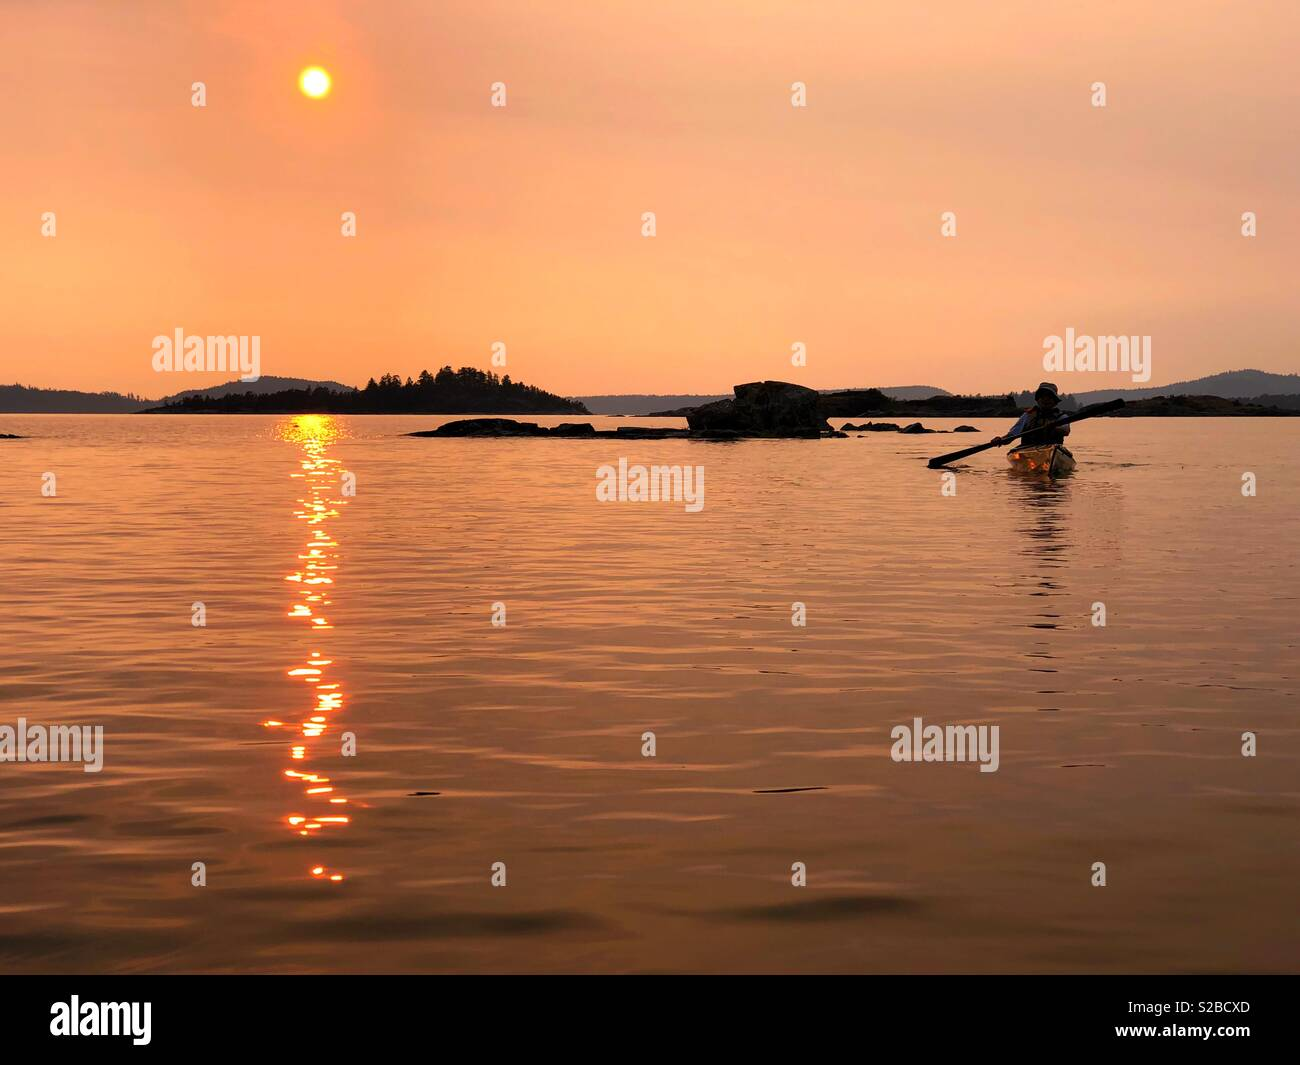 Kayaker paddle into dramatic sunset at Desolation Sound during forest fires in summer - Stock Image